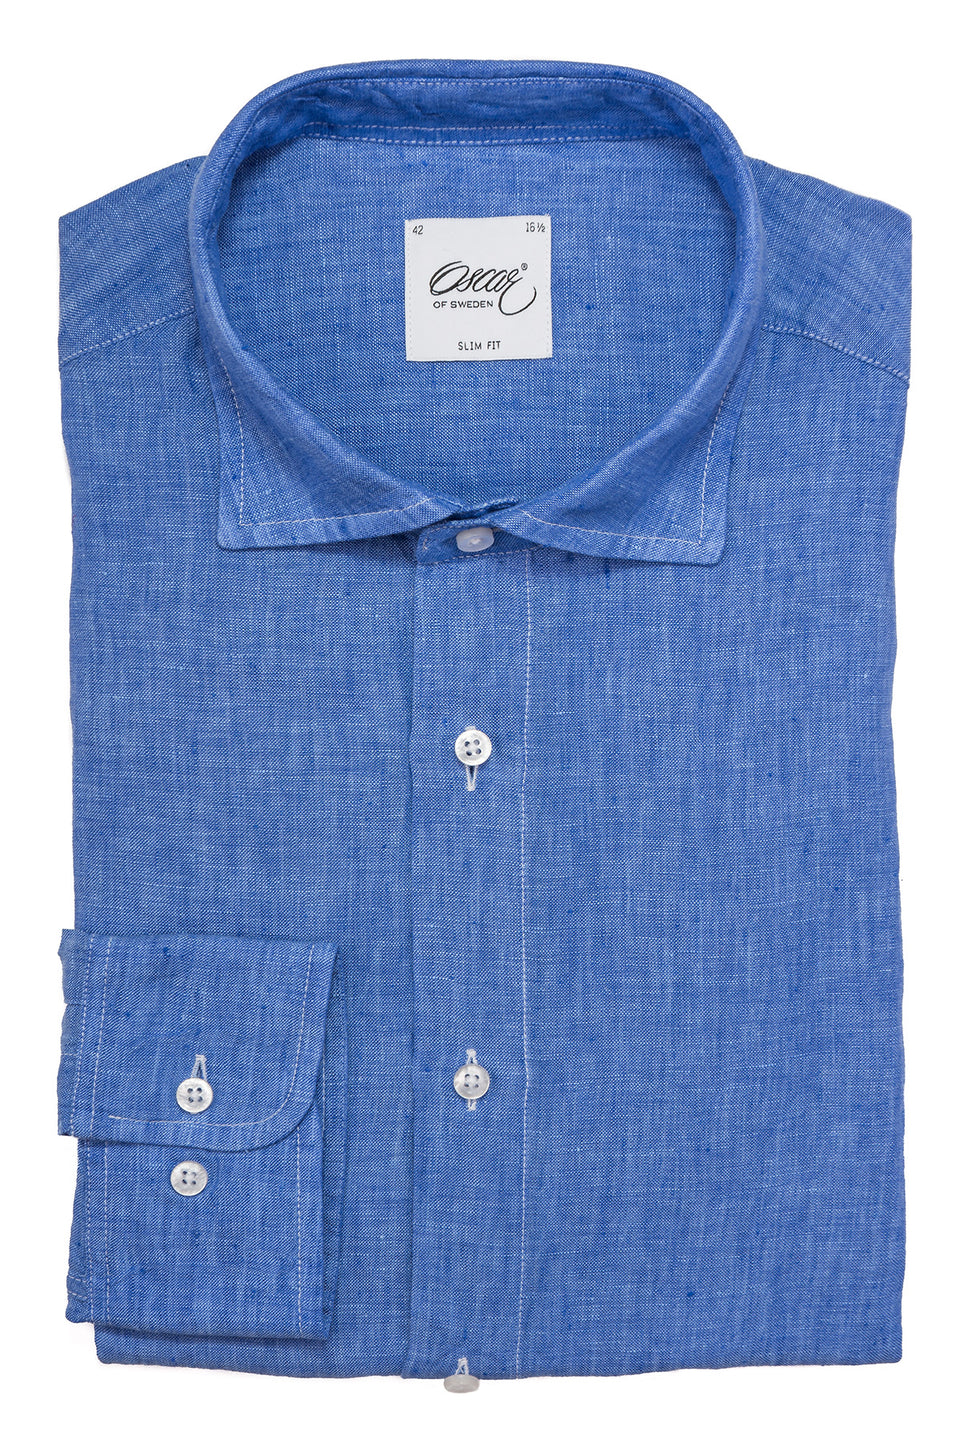 Blue slim fit linen shirt